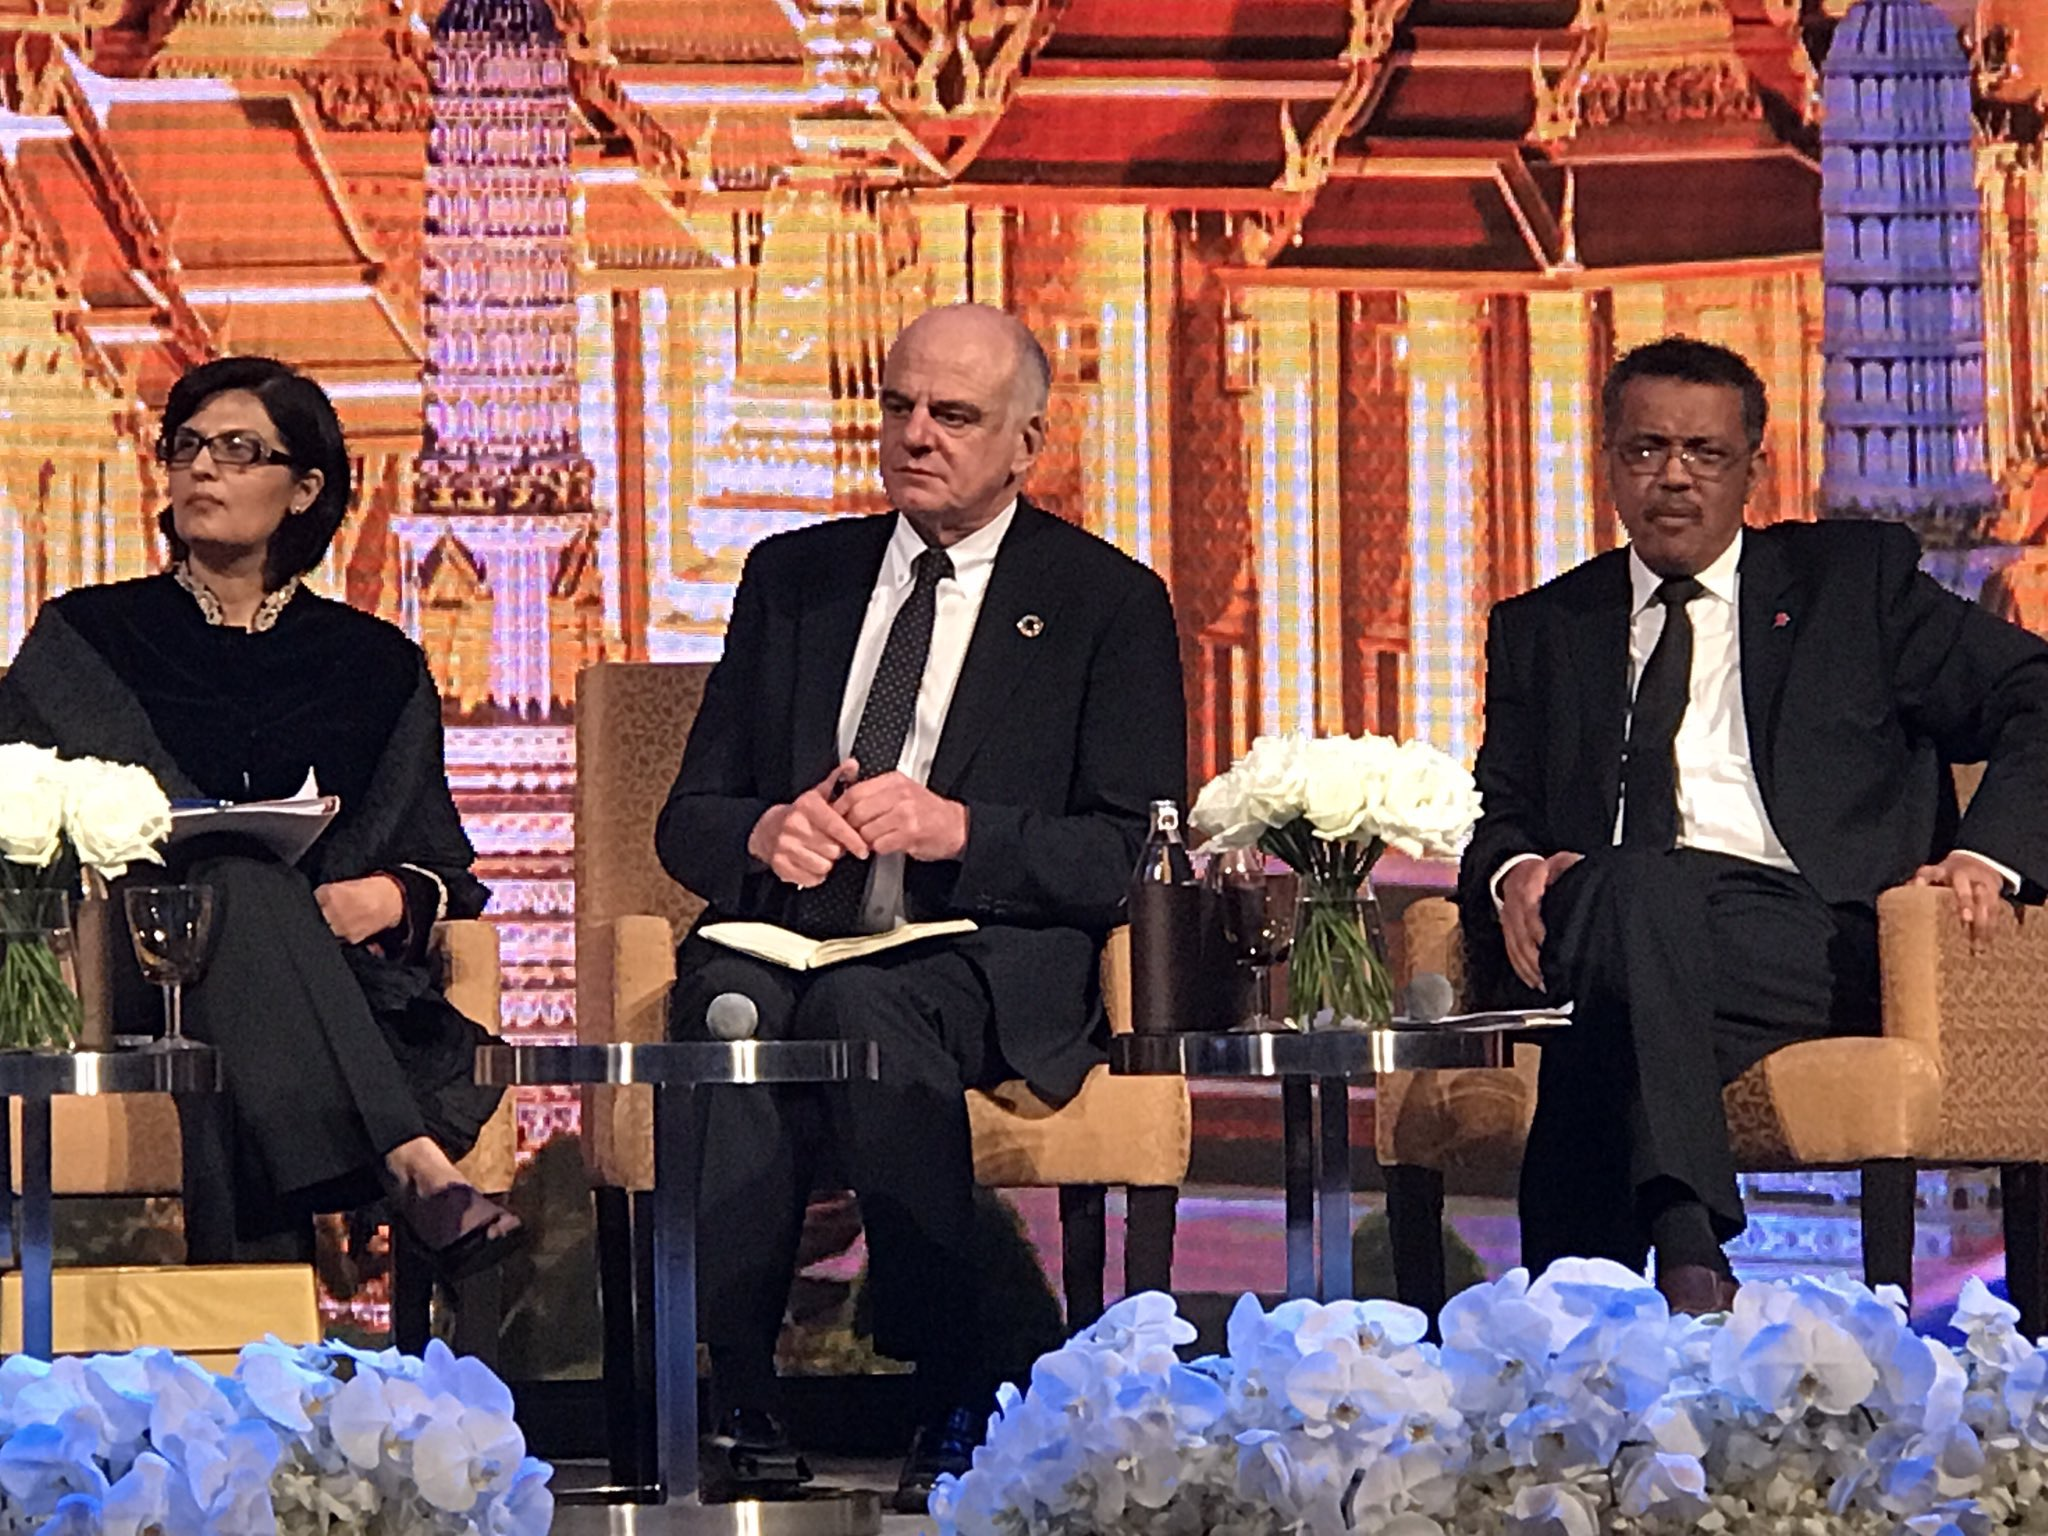 Prince Mahidhol Award Conference, Opening Dinner Panel, 2017